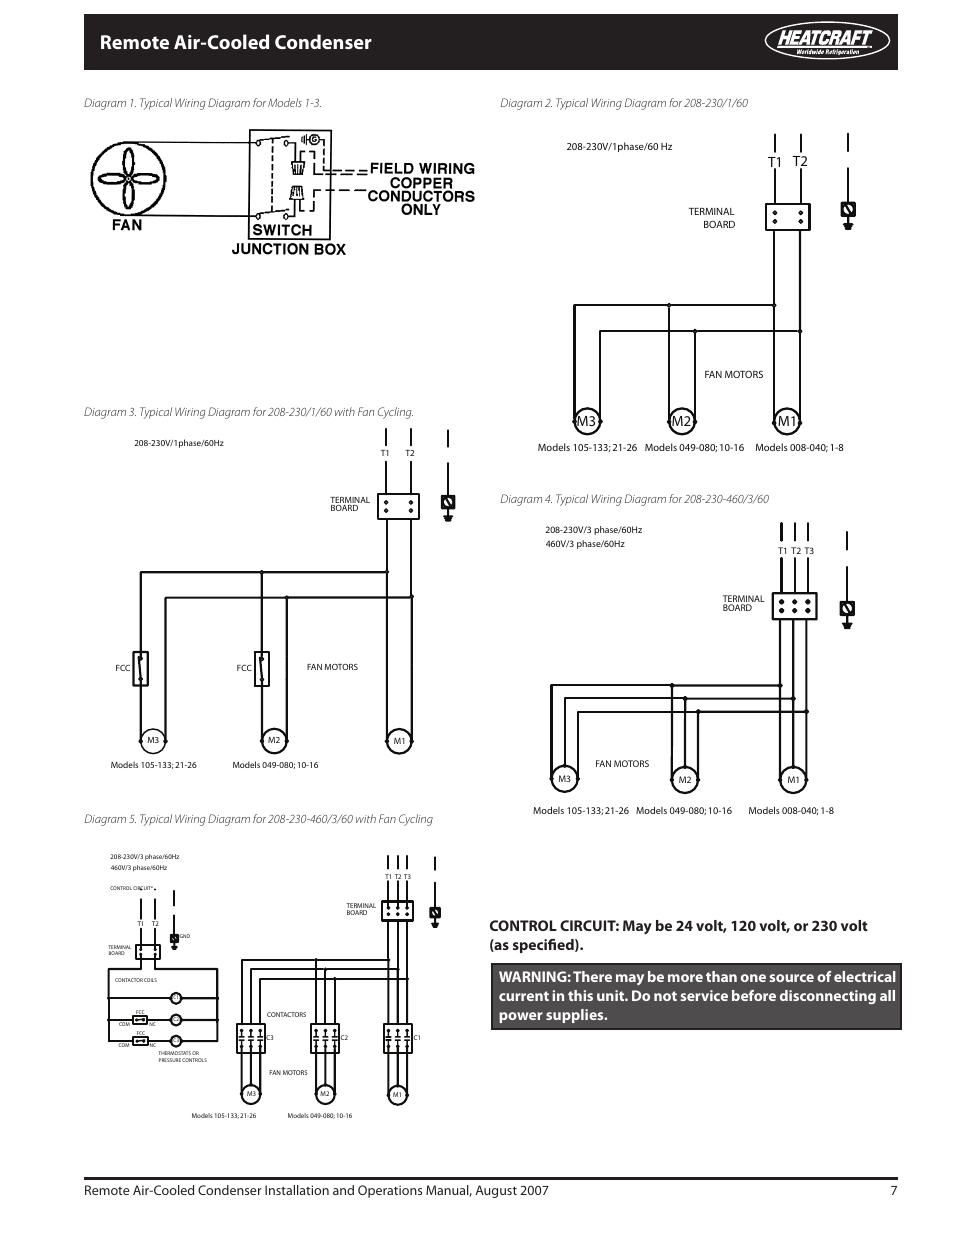 Ab Powerflex 755 Wiring Diagram Auto Electrical Related With